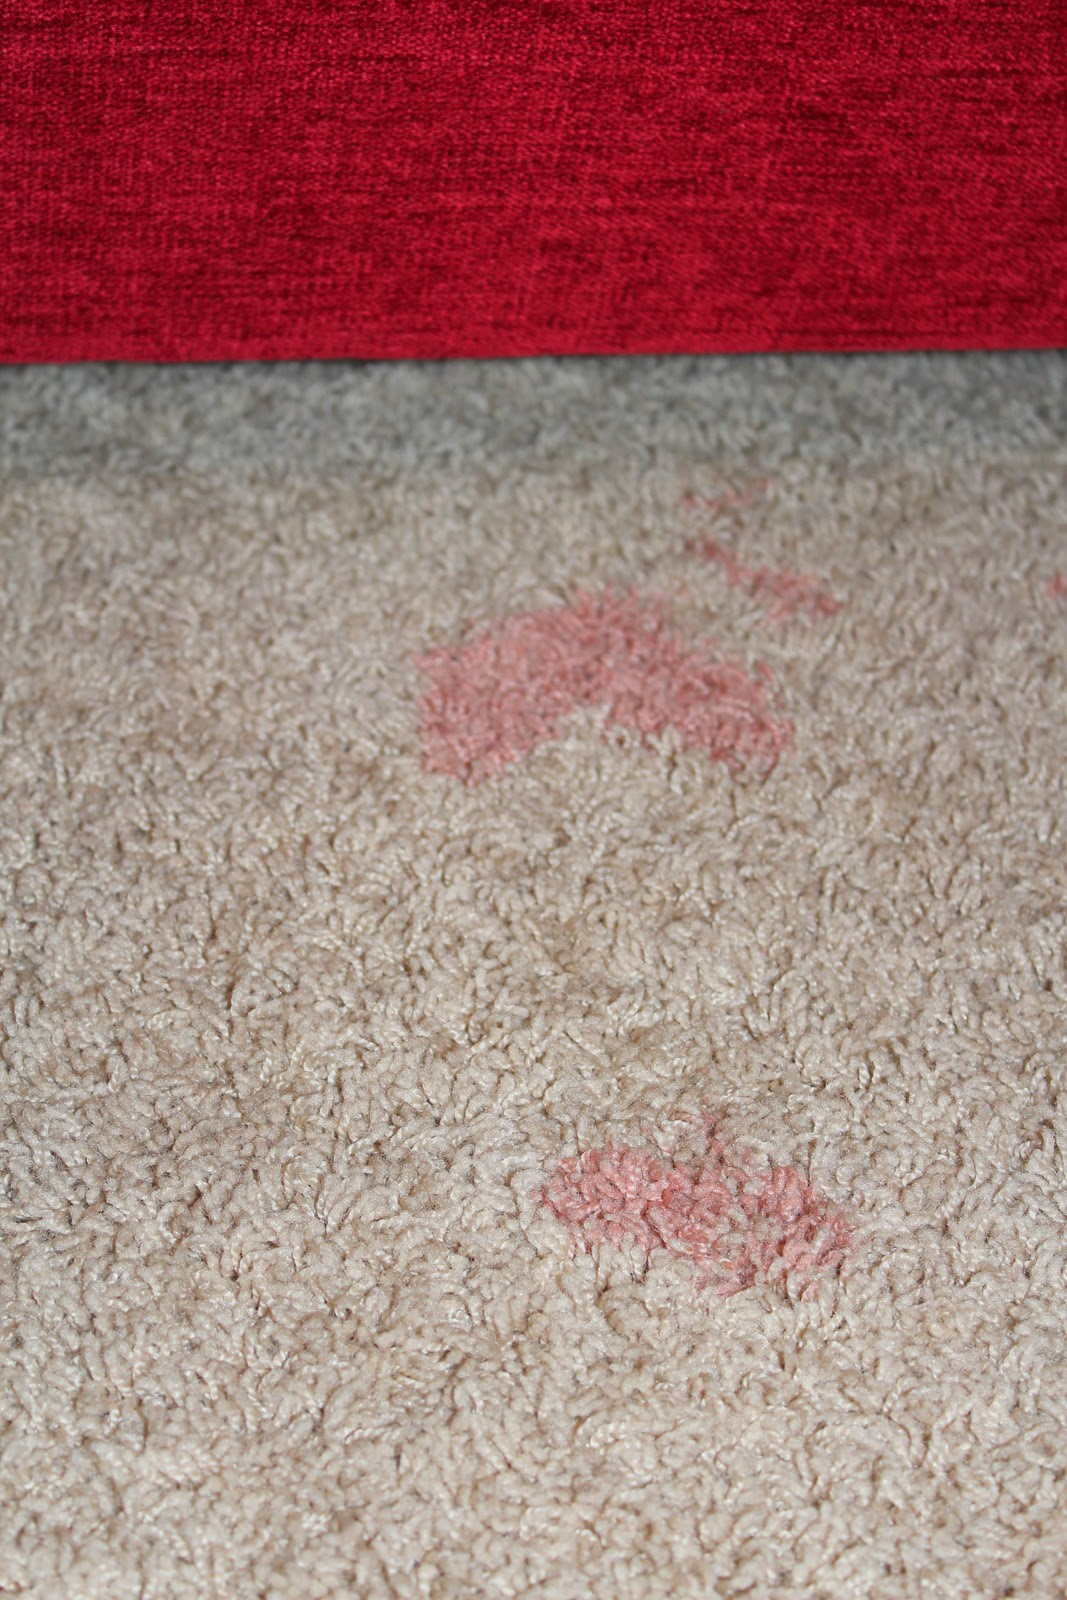 Harris Sisters Girltalk How To Remove Tough Carpet Stains